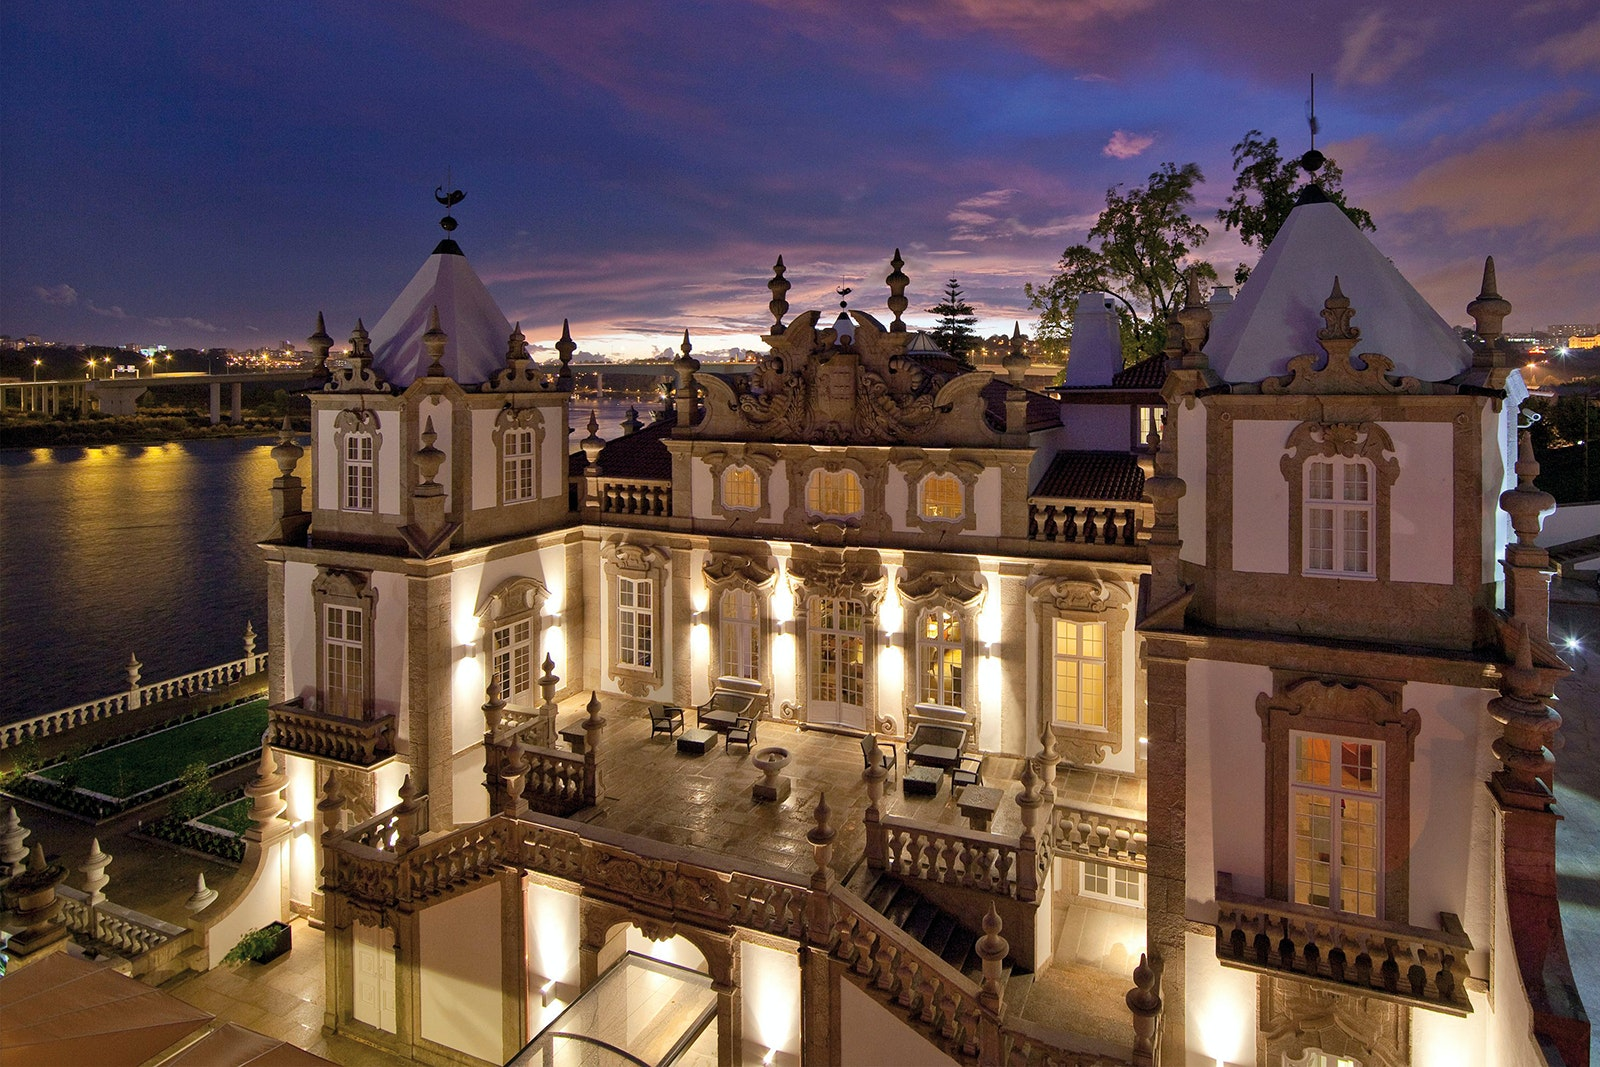 With its rococo architecture and breathtaking views, it's no wonder Pestana Palácio do Freixo was originally a palace.